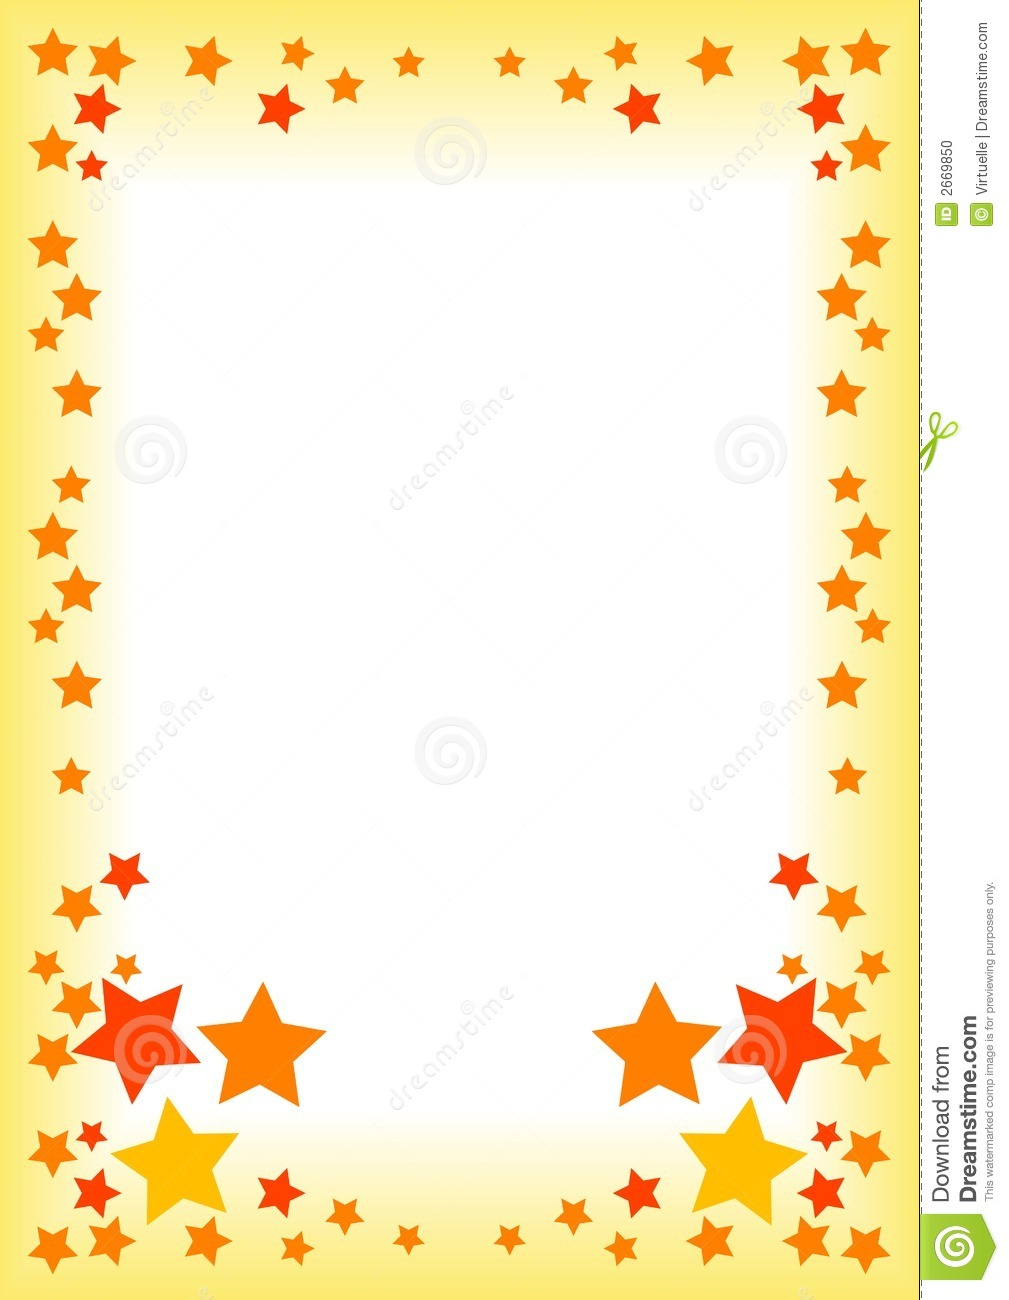 Border with stars stock vector. Illustration of wedding ...